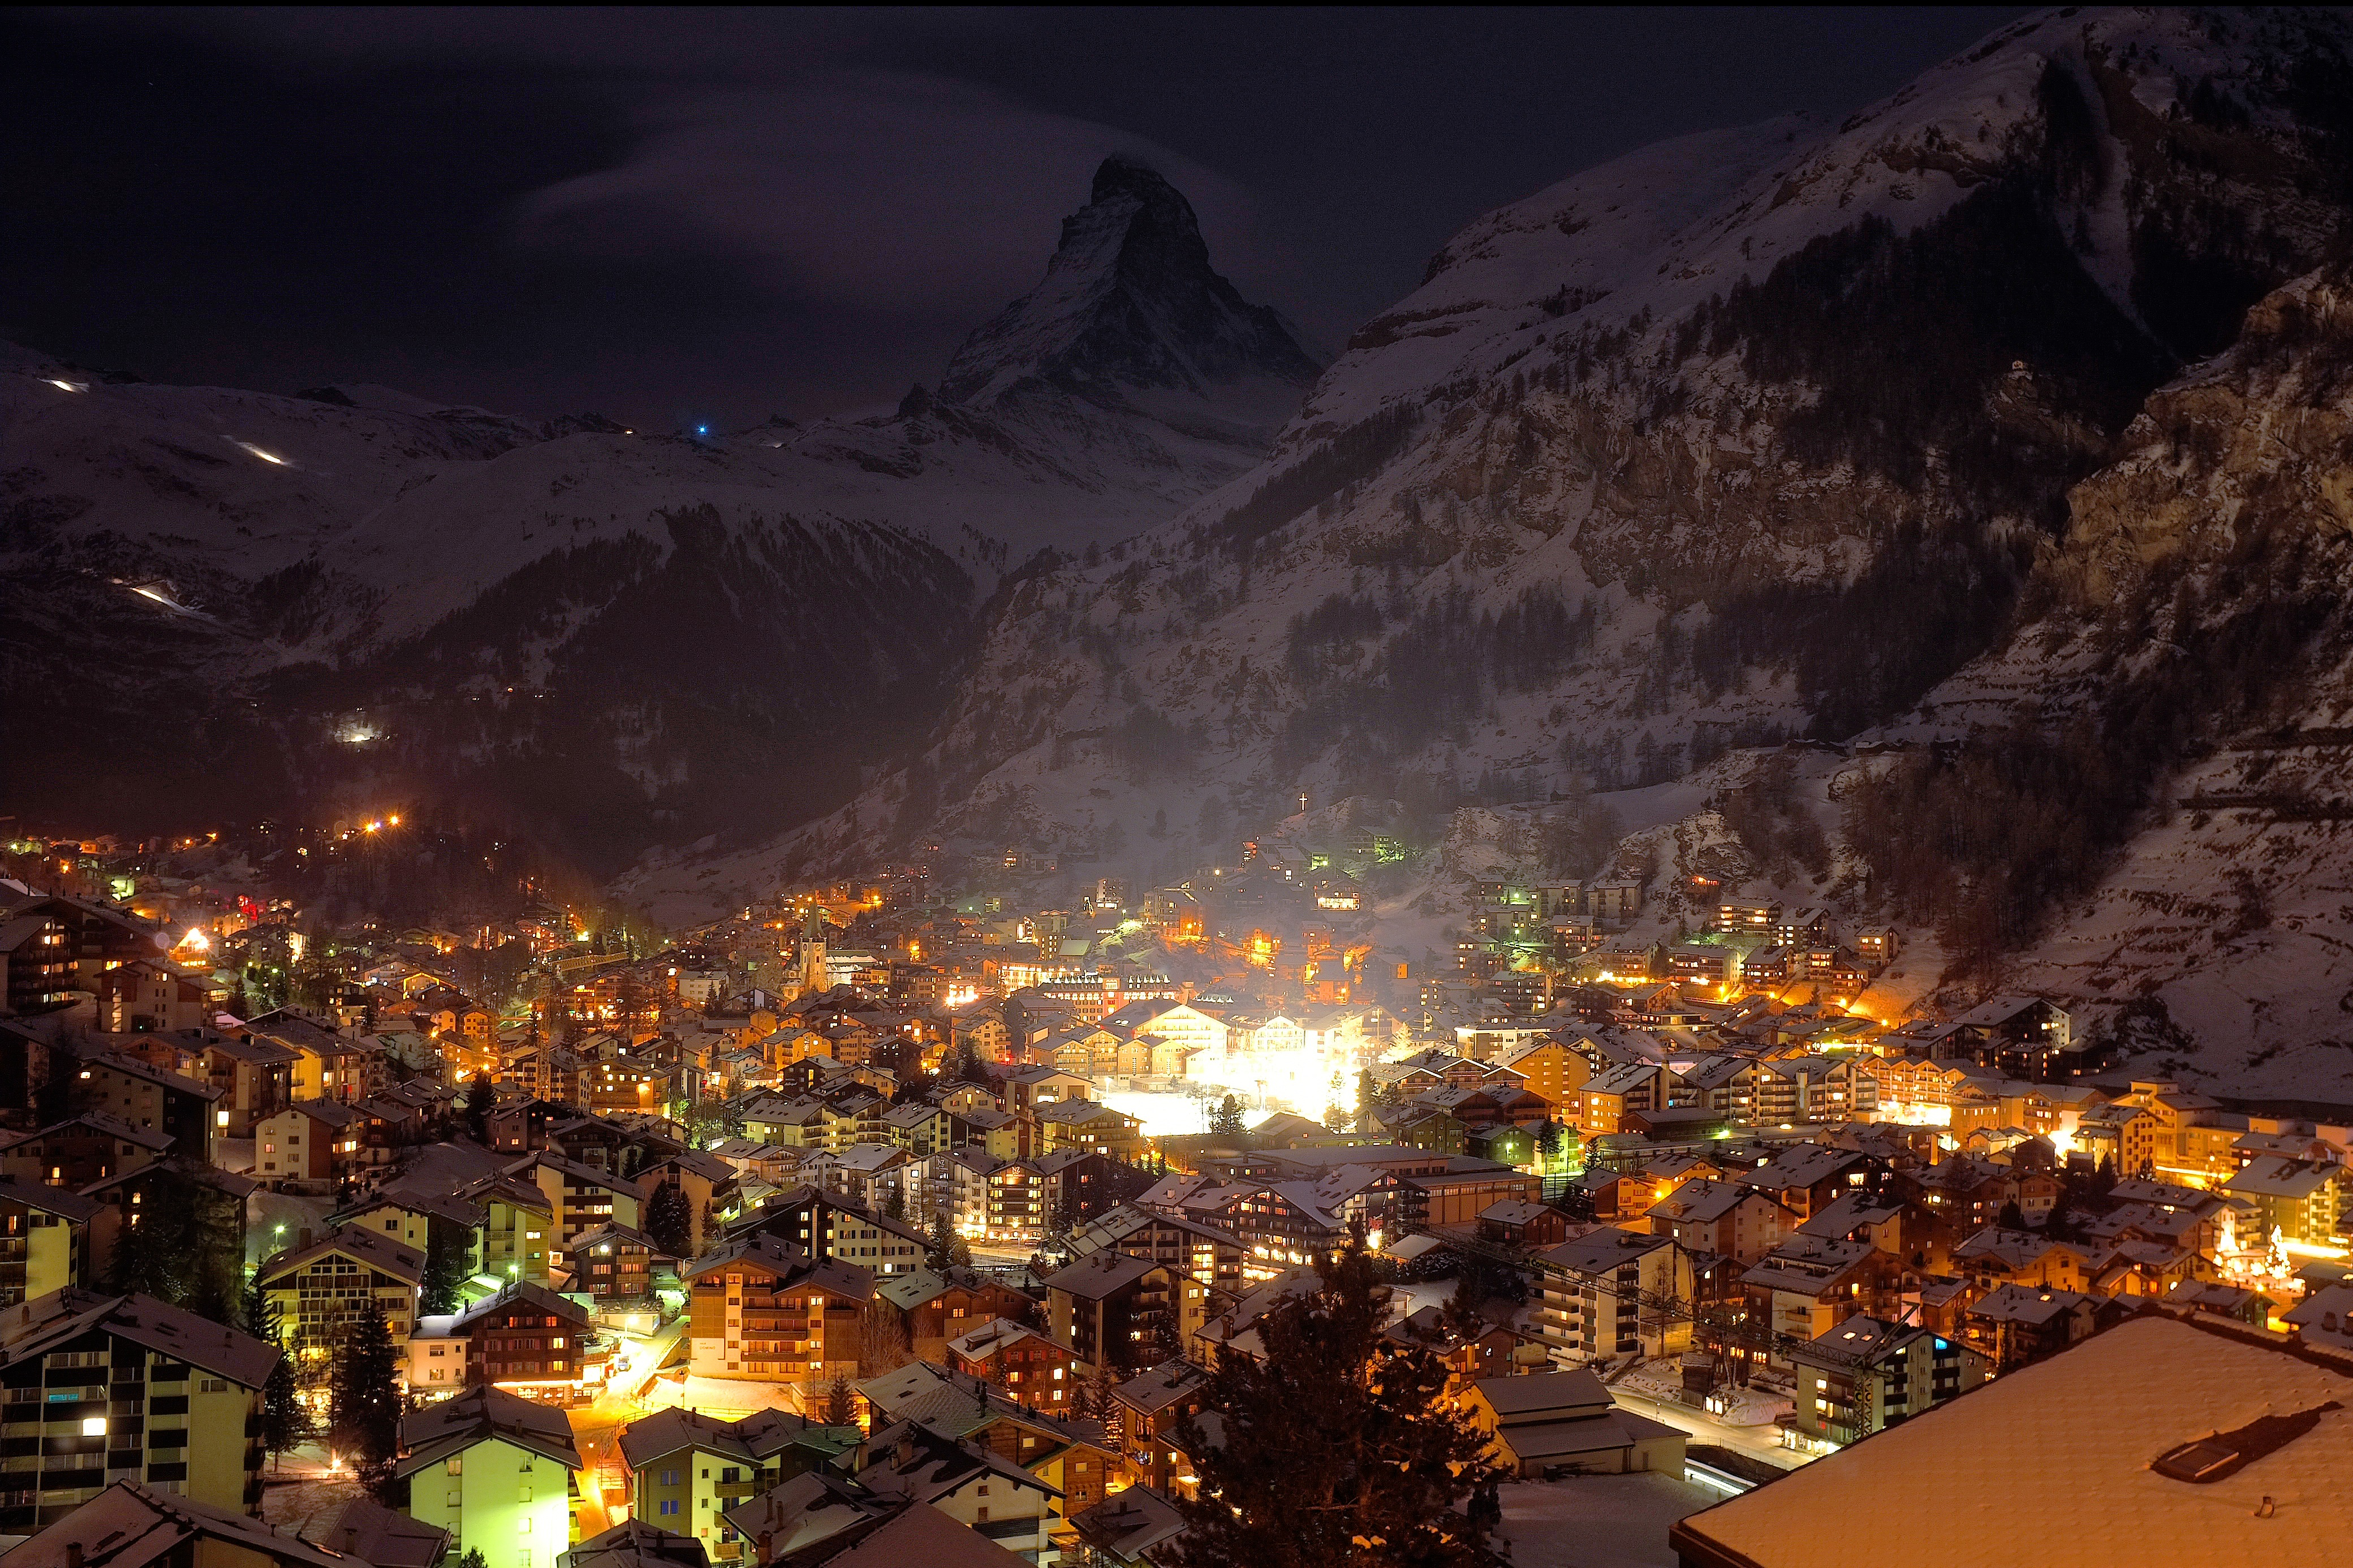 Winter Night At Winter Village In The Swiss Alps 4k Ultra Hd